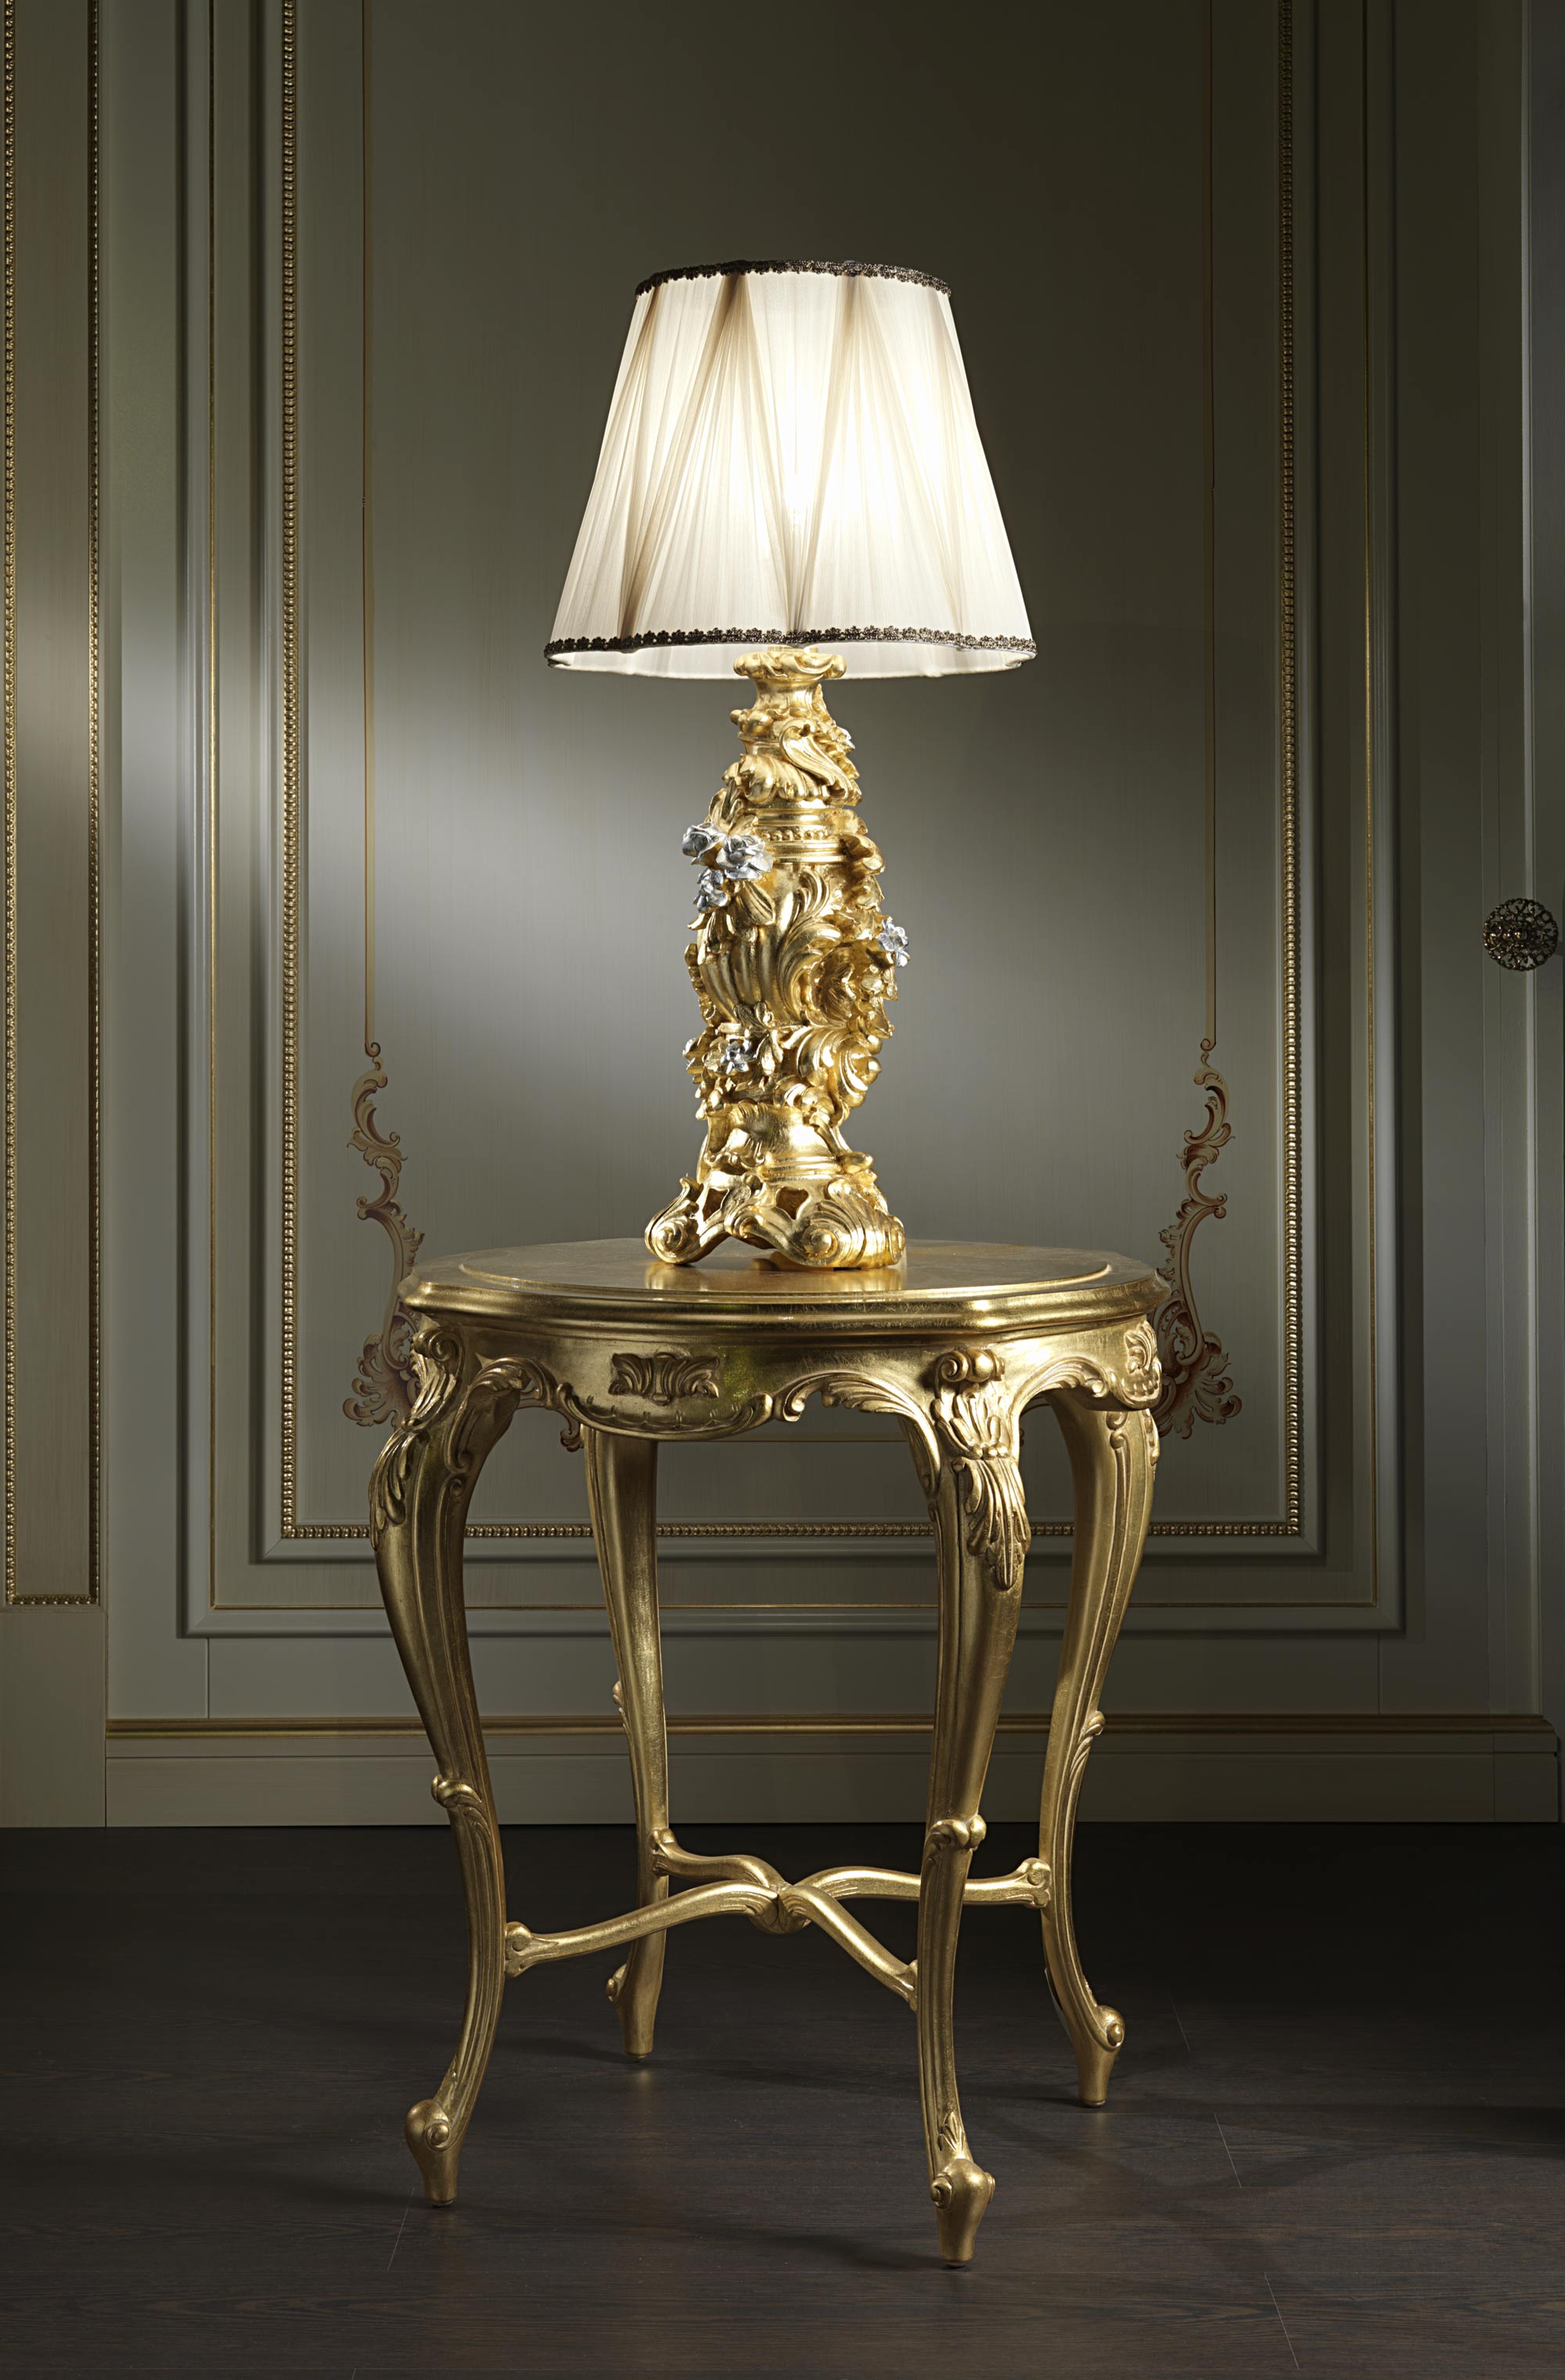 Luxury Table Lamps Baroque Classic Table Lamps Vimercati Classic Furniture